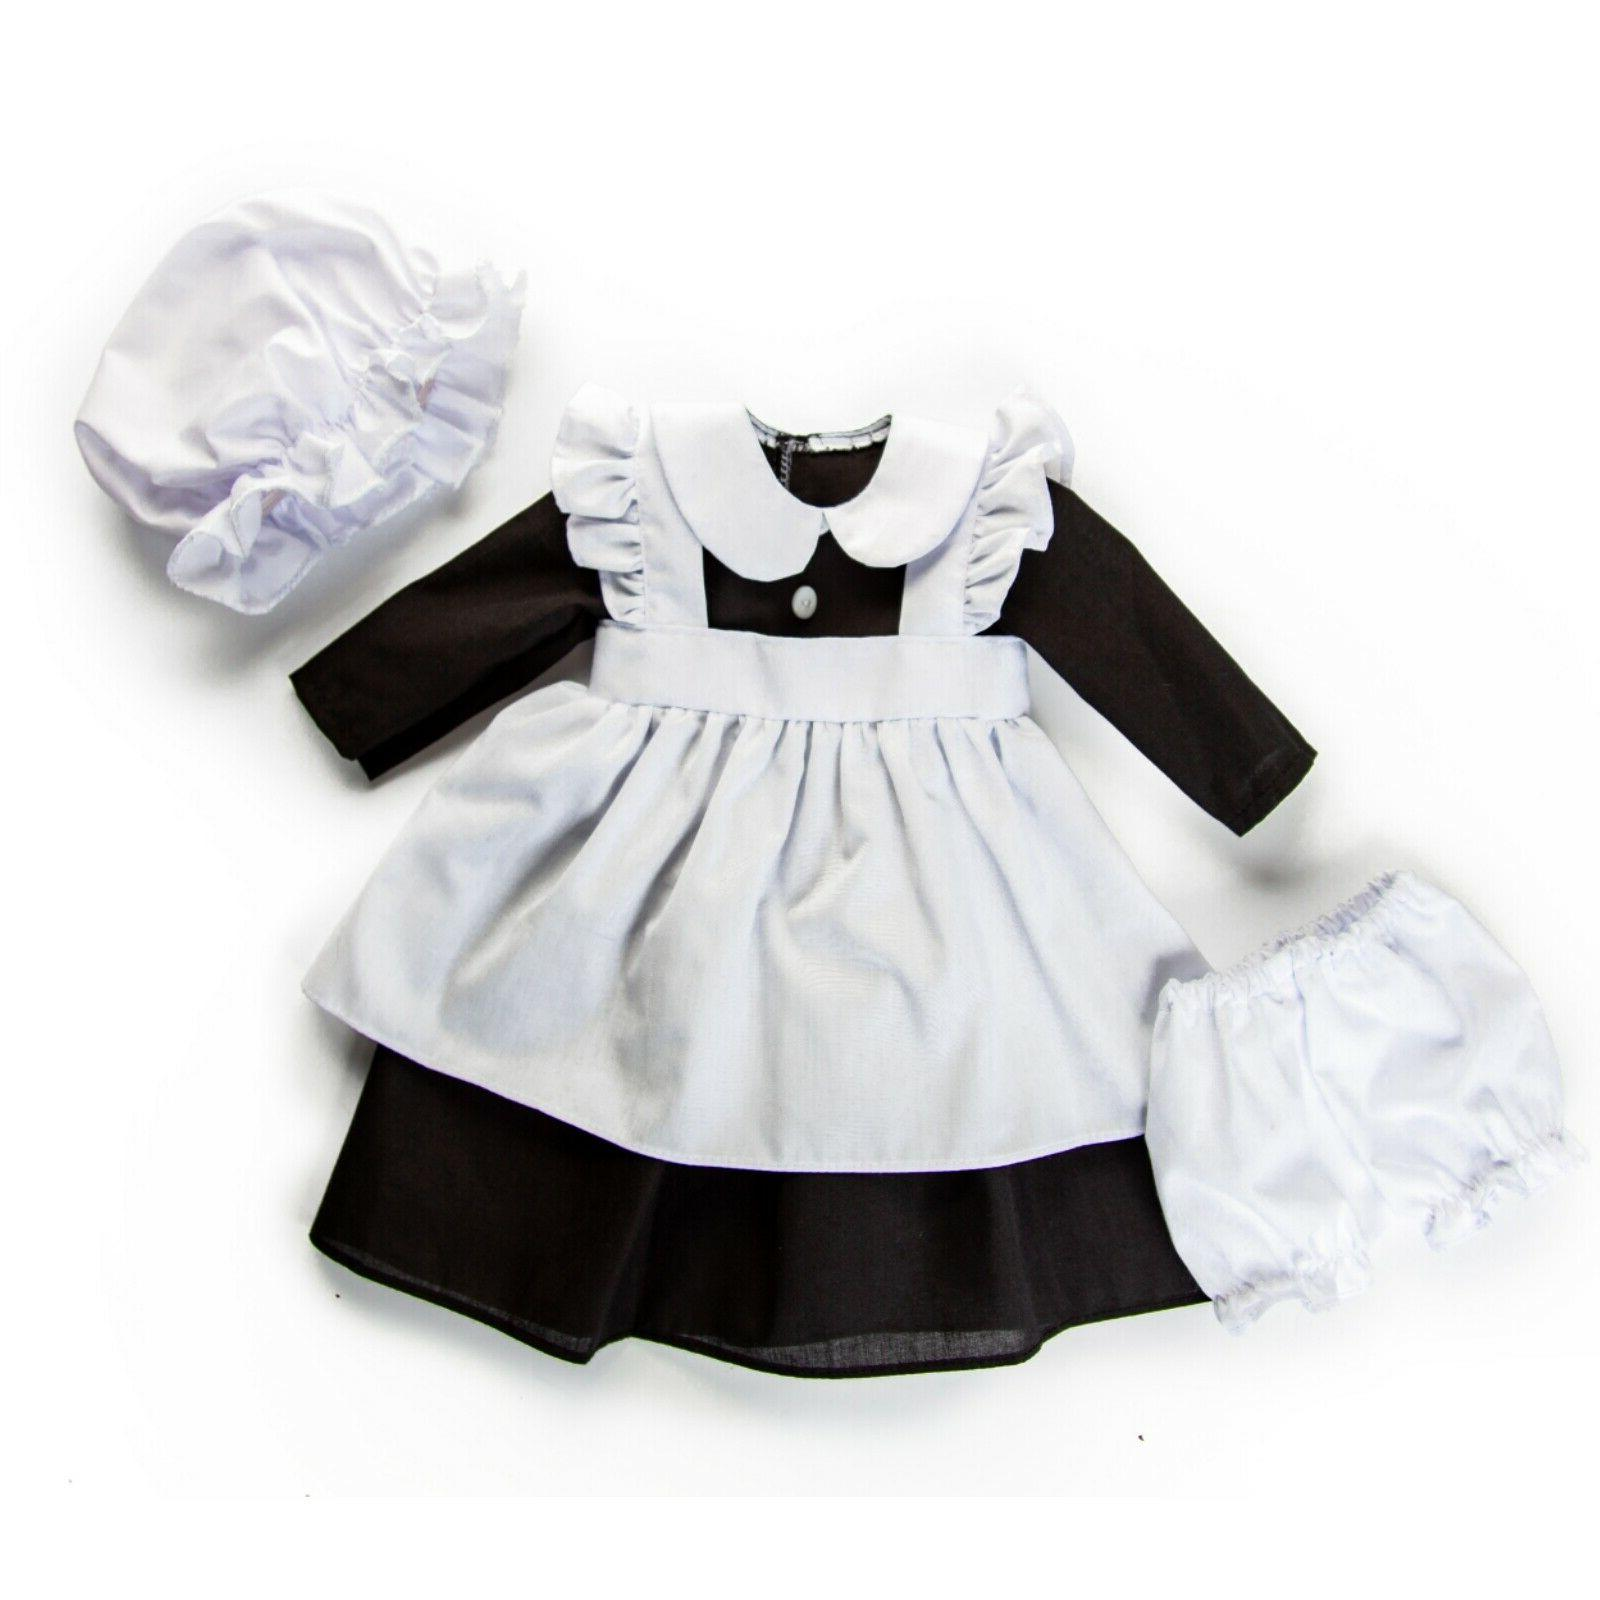 4 PIECE HISTORIC MAID OUTFIT Girl